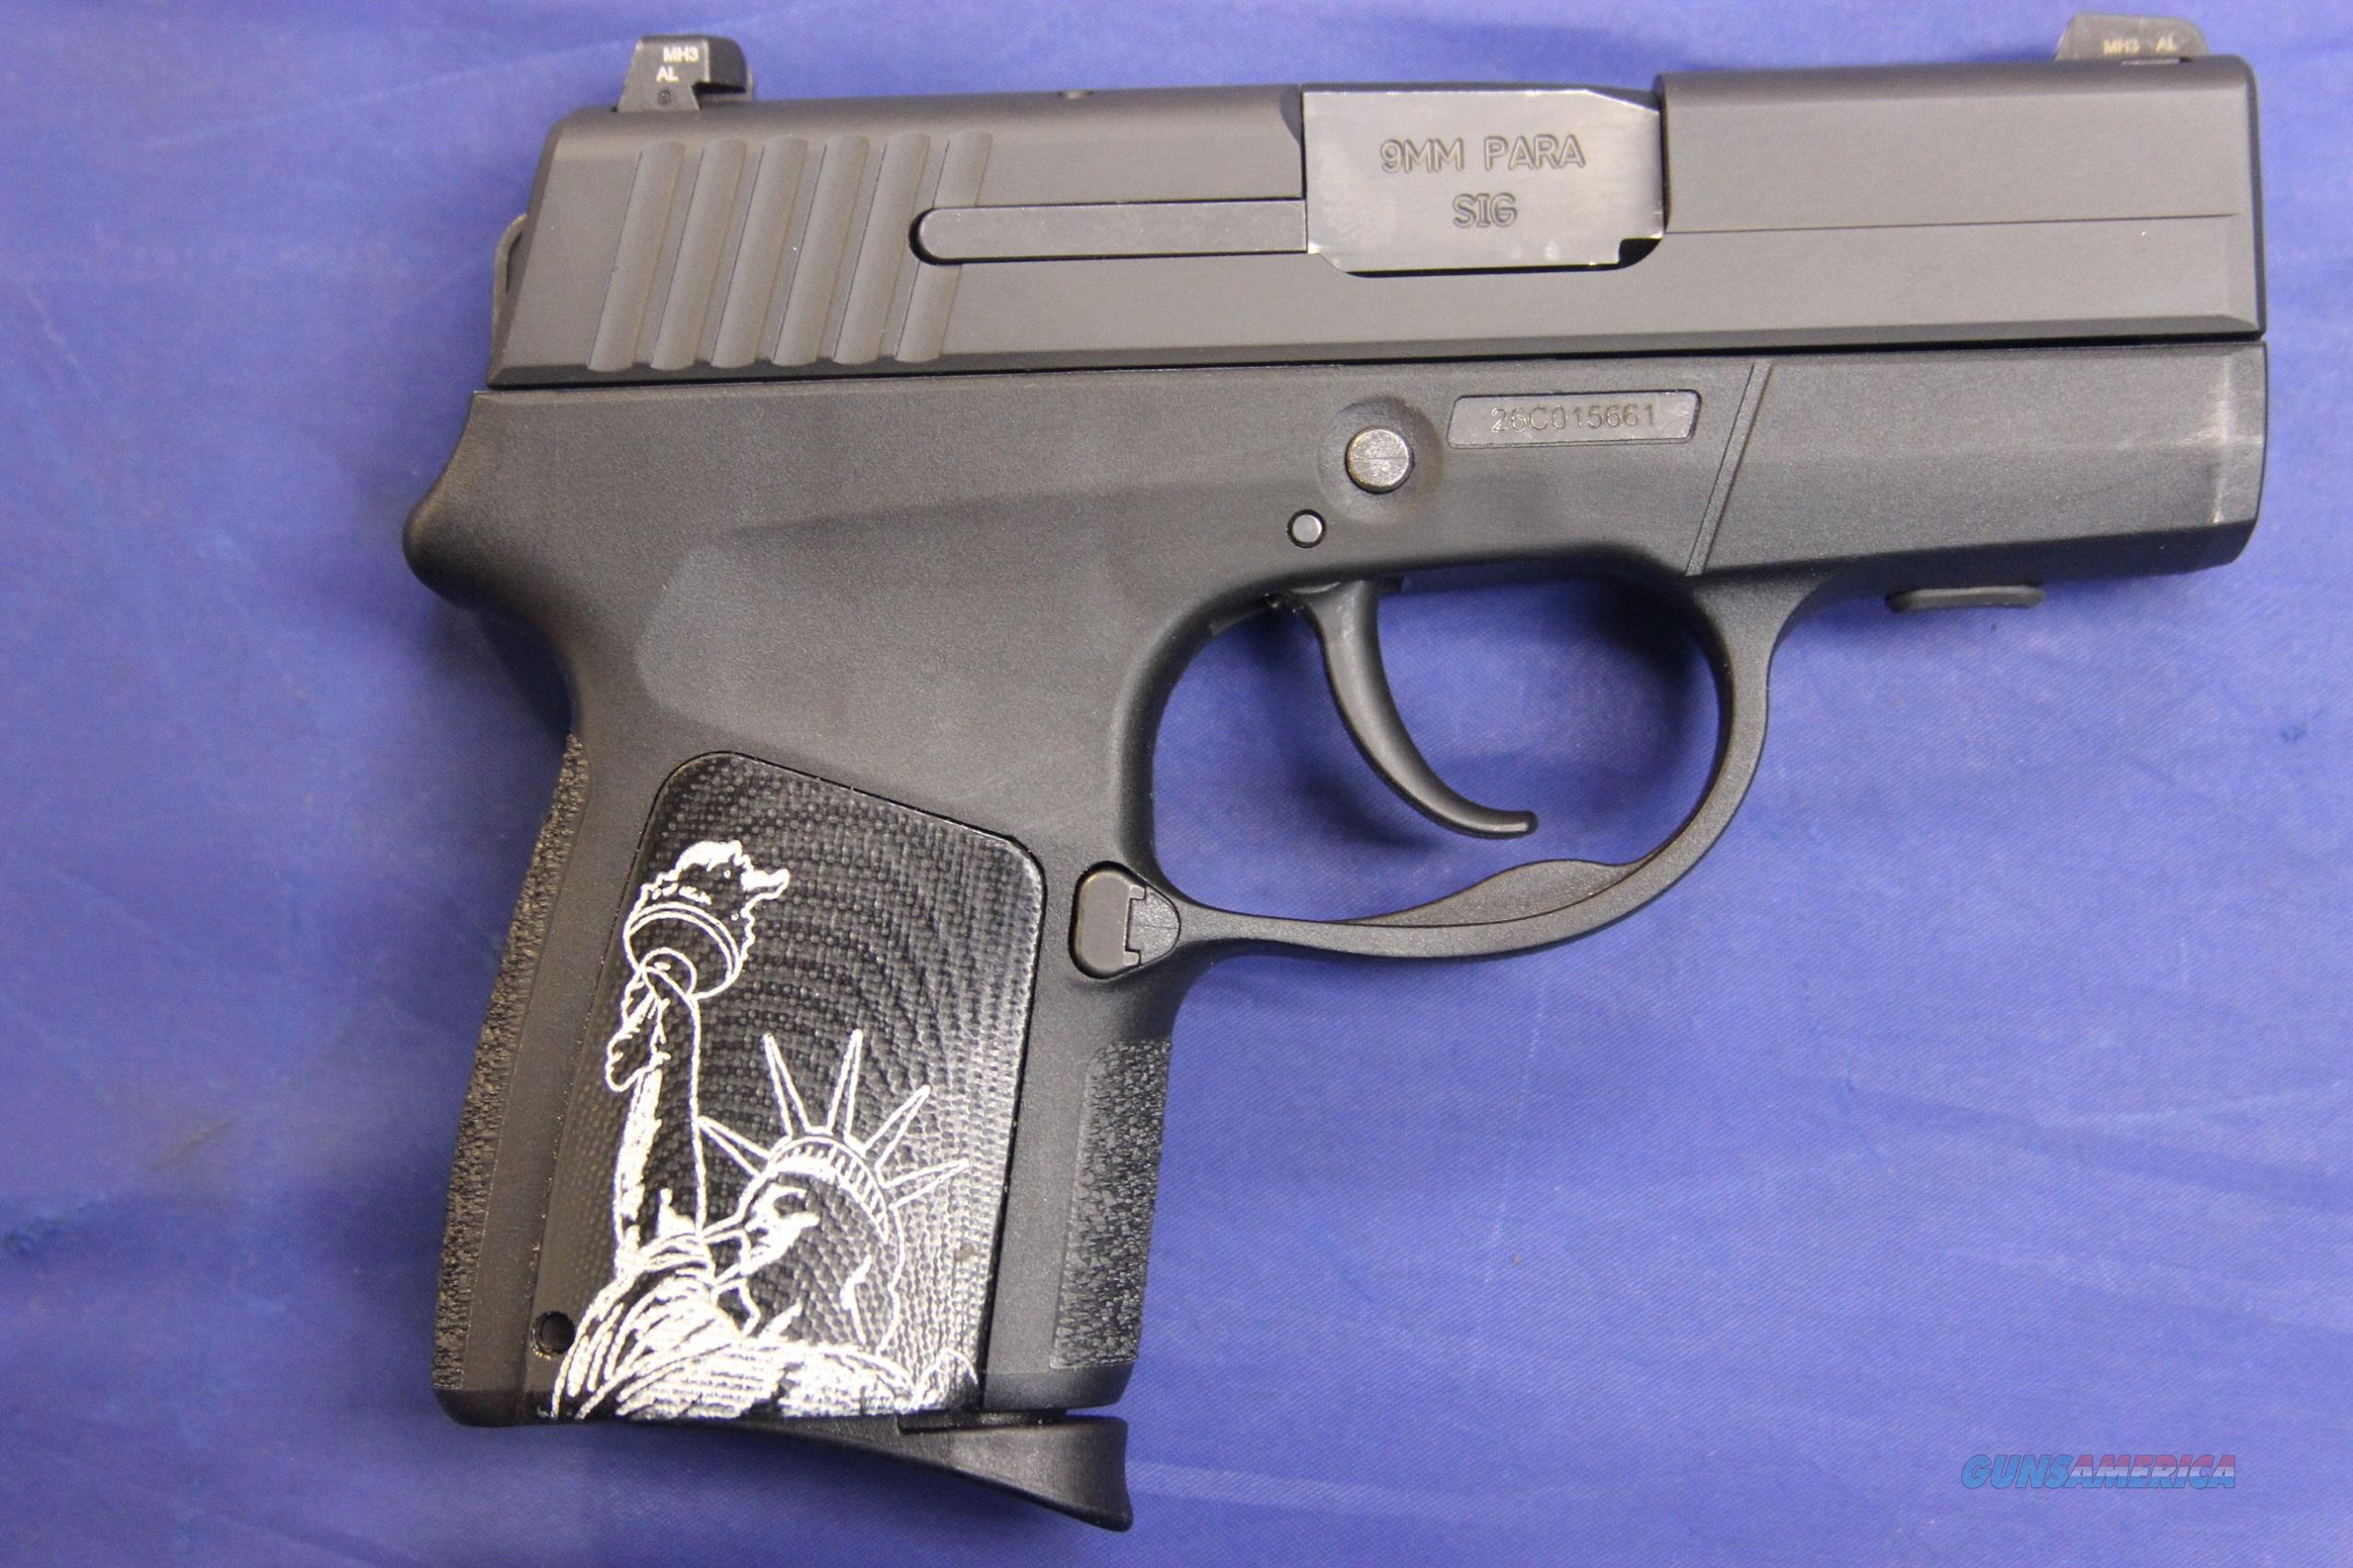 SIG SAUER P290 RS LIBERTY EDITION 9mm w/ EXTRAS & FREE SHIPPING!  Guns > Pistols > Sig - Sauer/Sigarms Pistols > Other